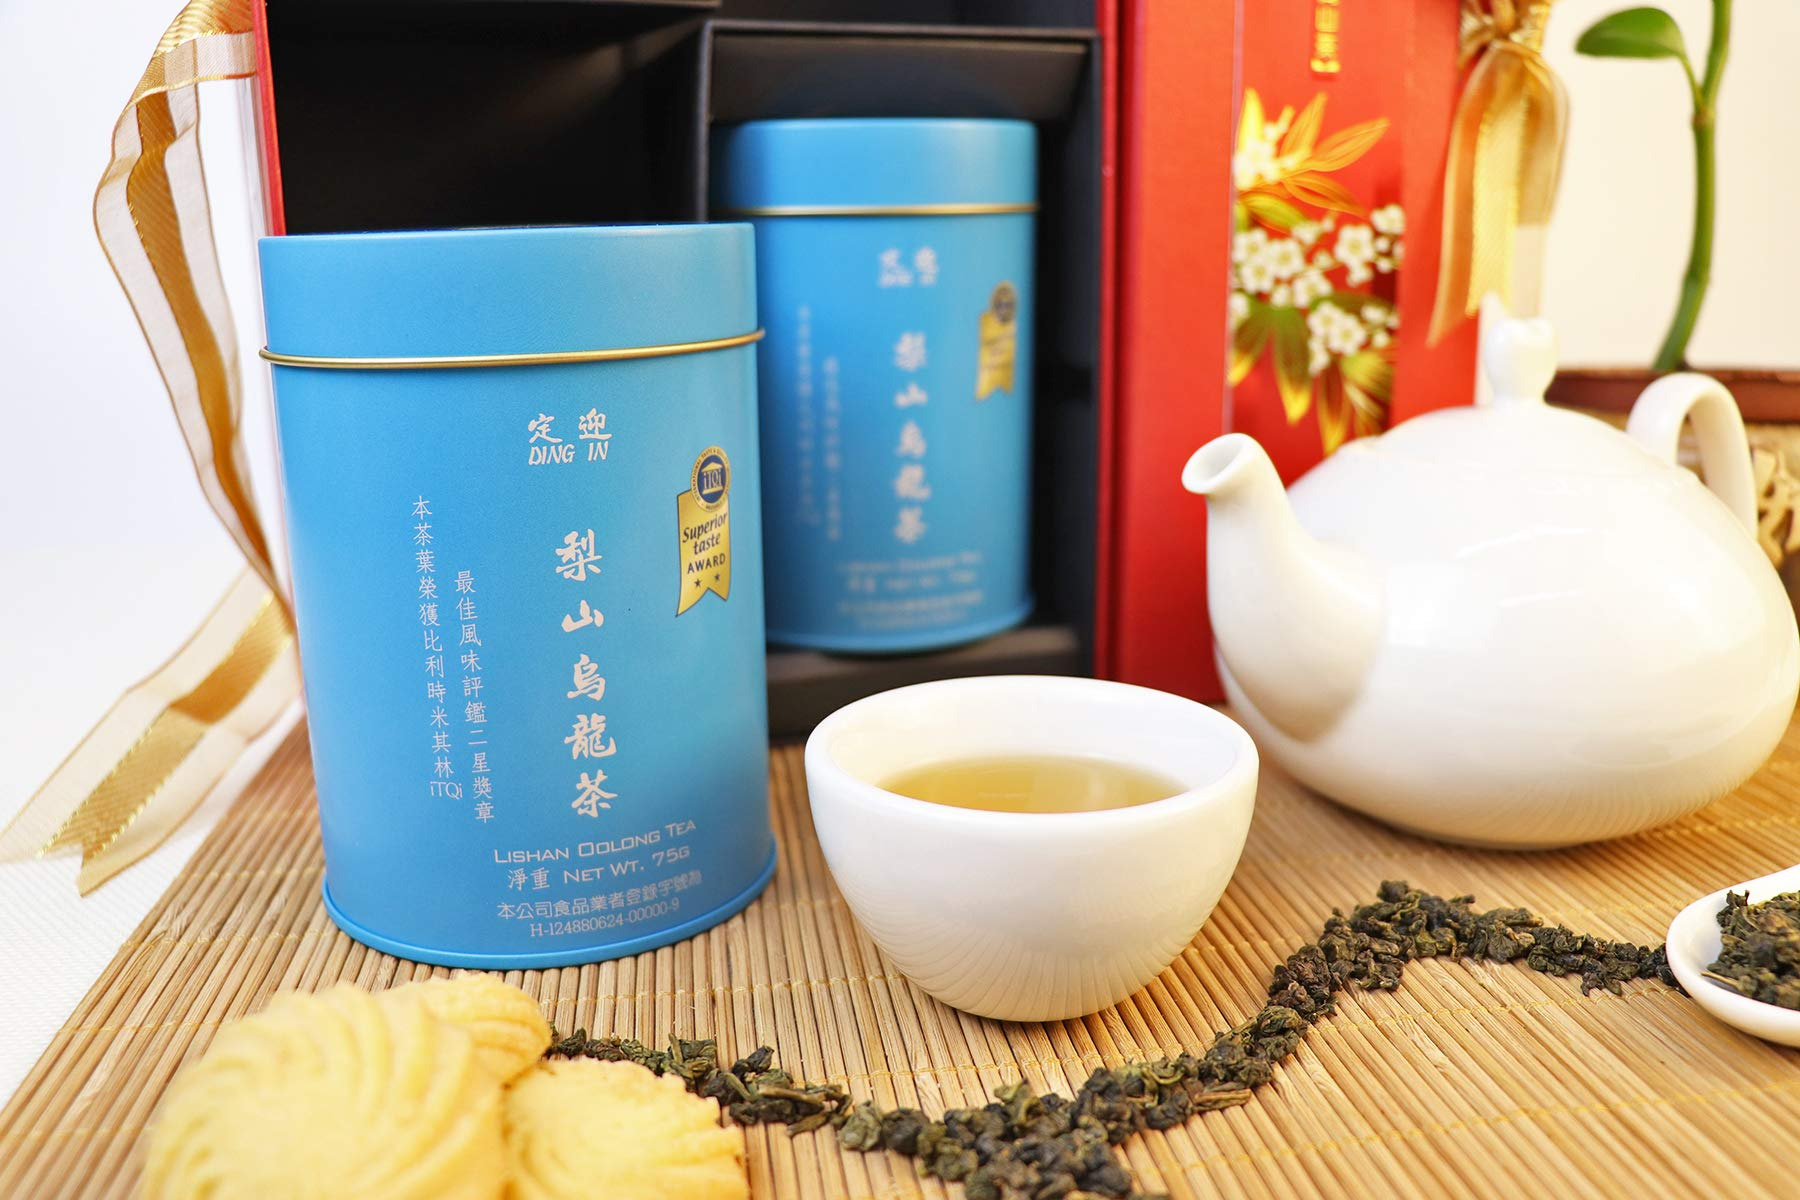 DING IN Lishan Oolong Tea Feast Straight Gift Box 75g/2cans by Ding In ltd. (Image #4)